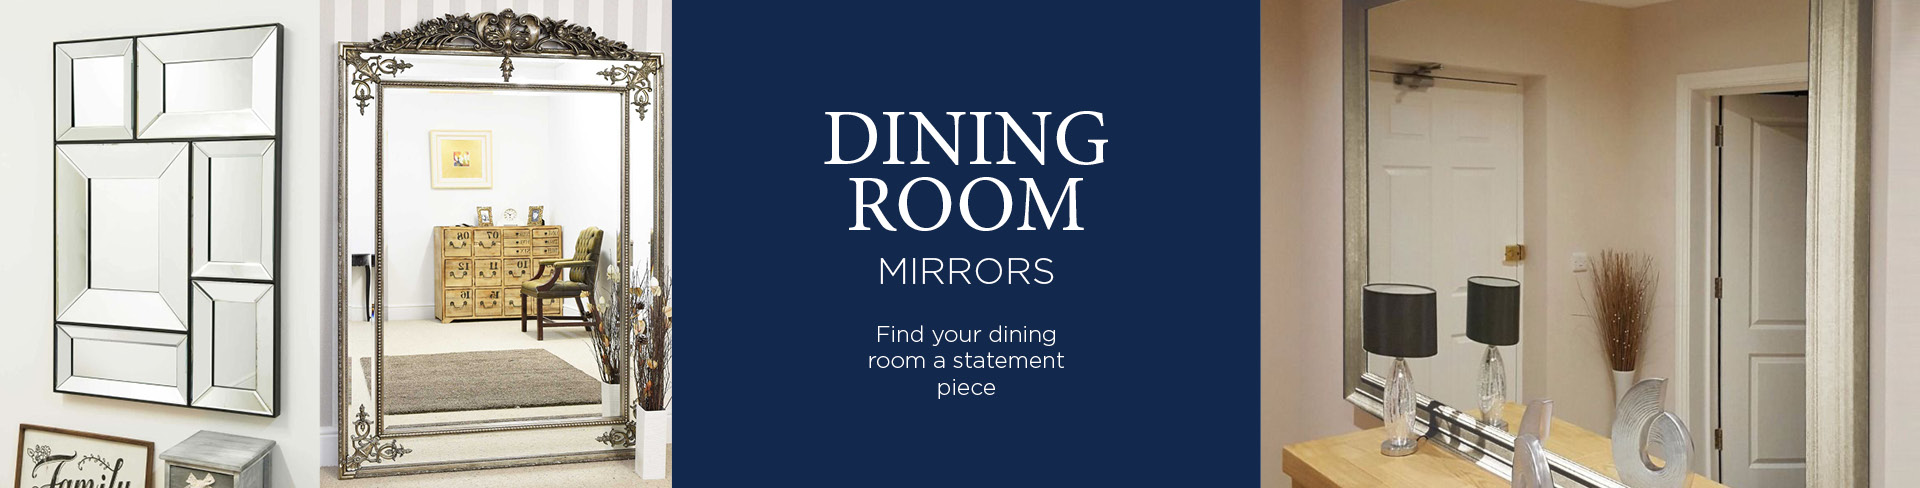 Dining Room Mirrors & Decorations